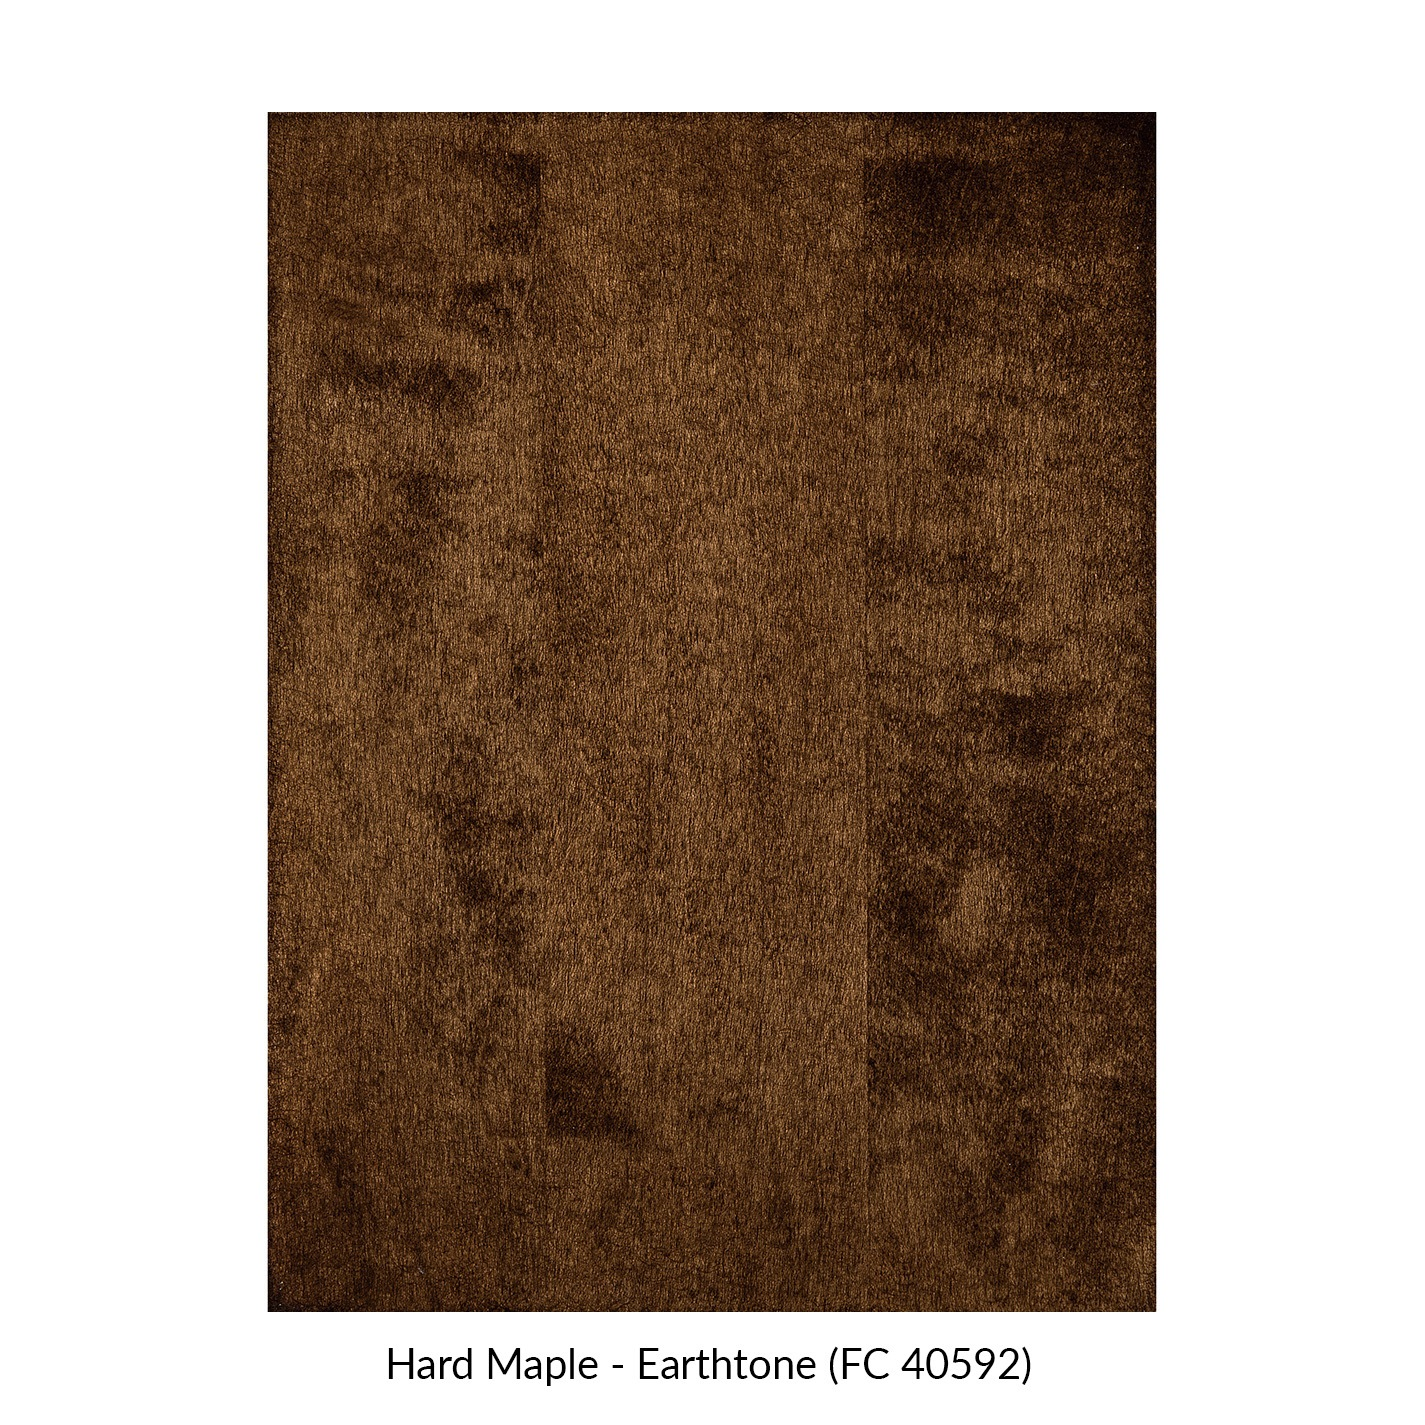 spectrum-hard-maple-earthtone-fc-40592.jpg